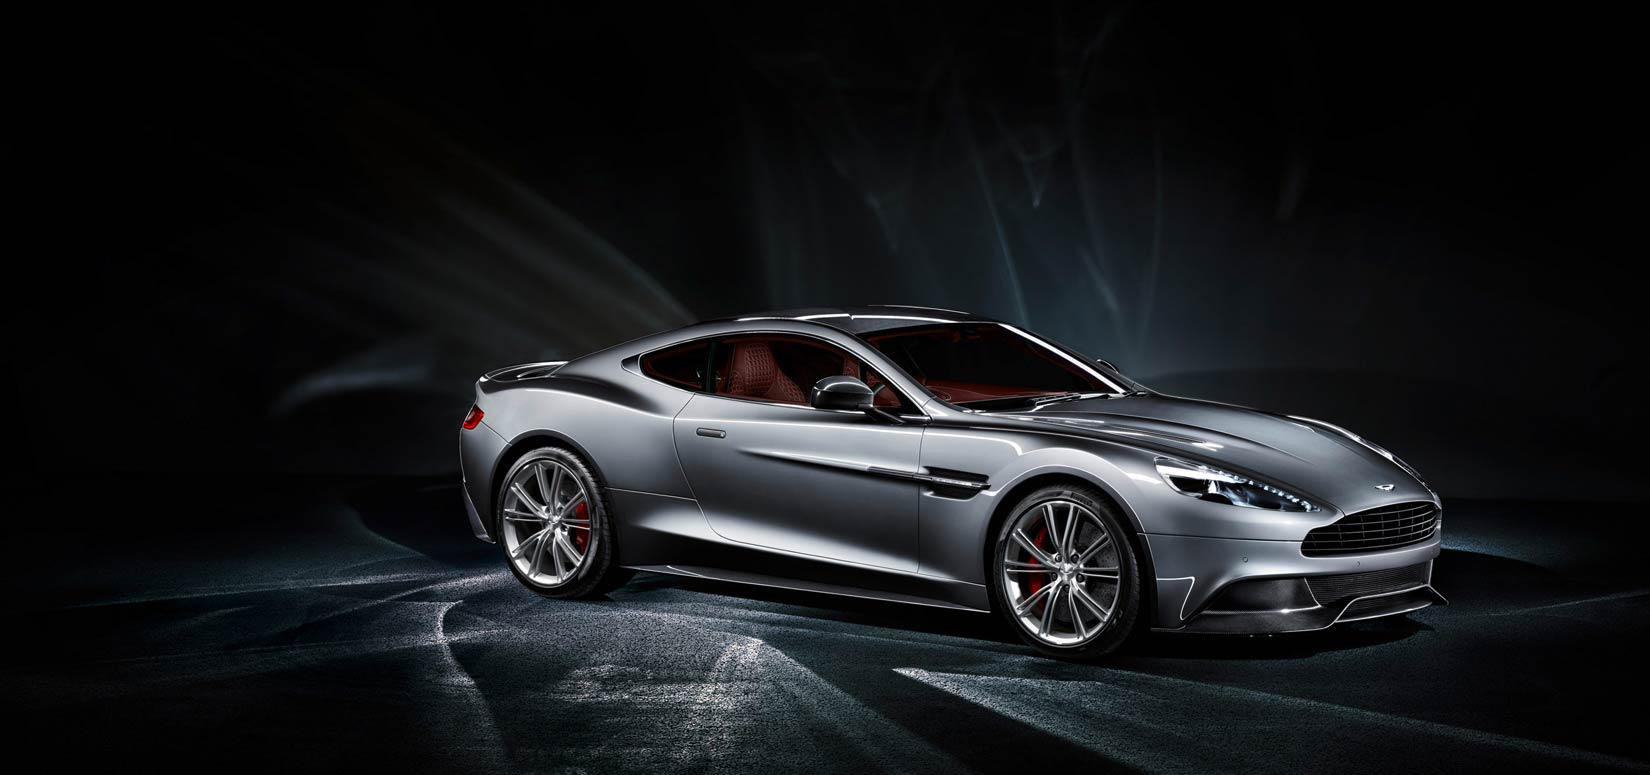 Aston Martin Vanquish Top Speed - How much is a aston martin